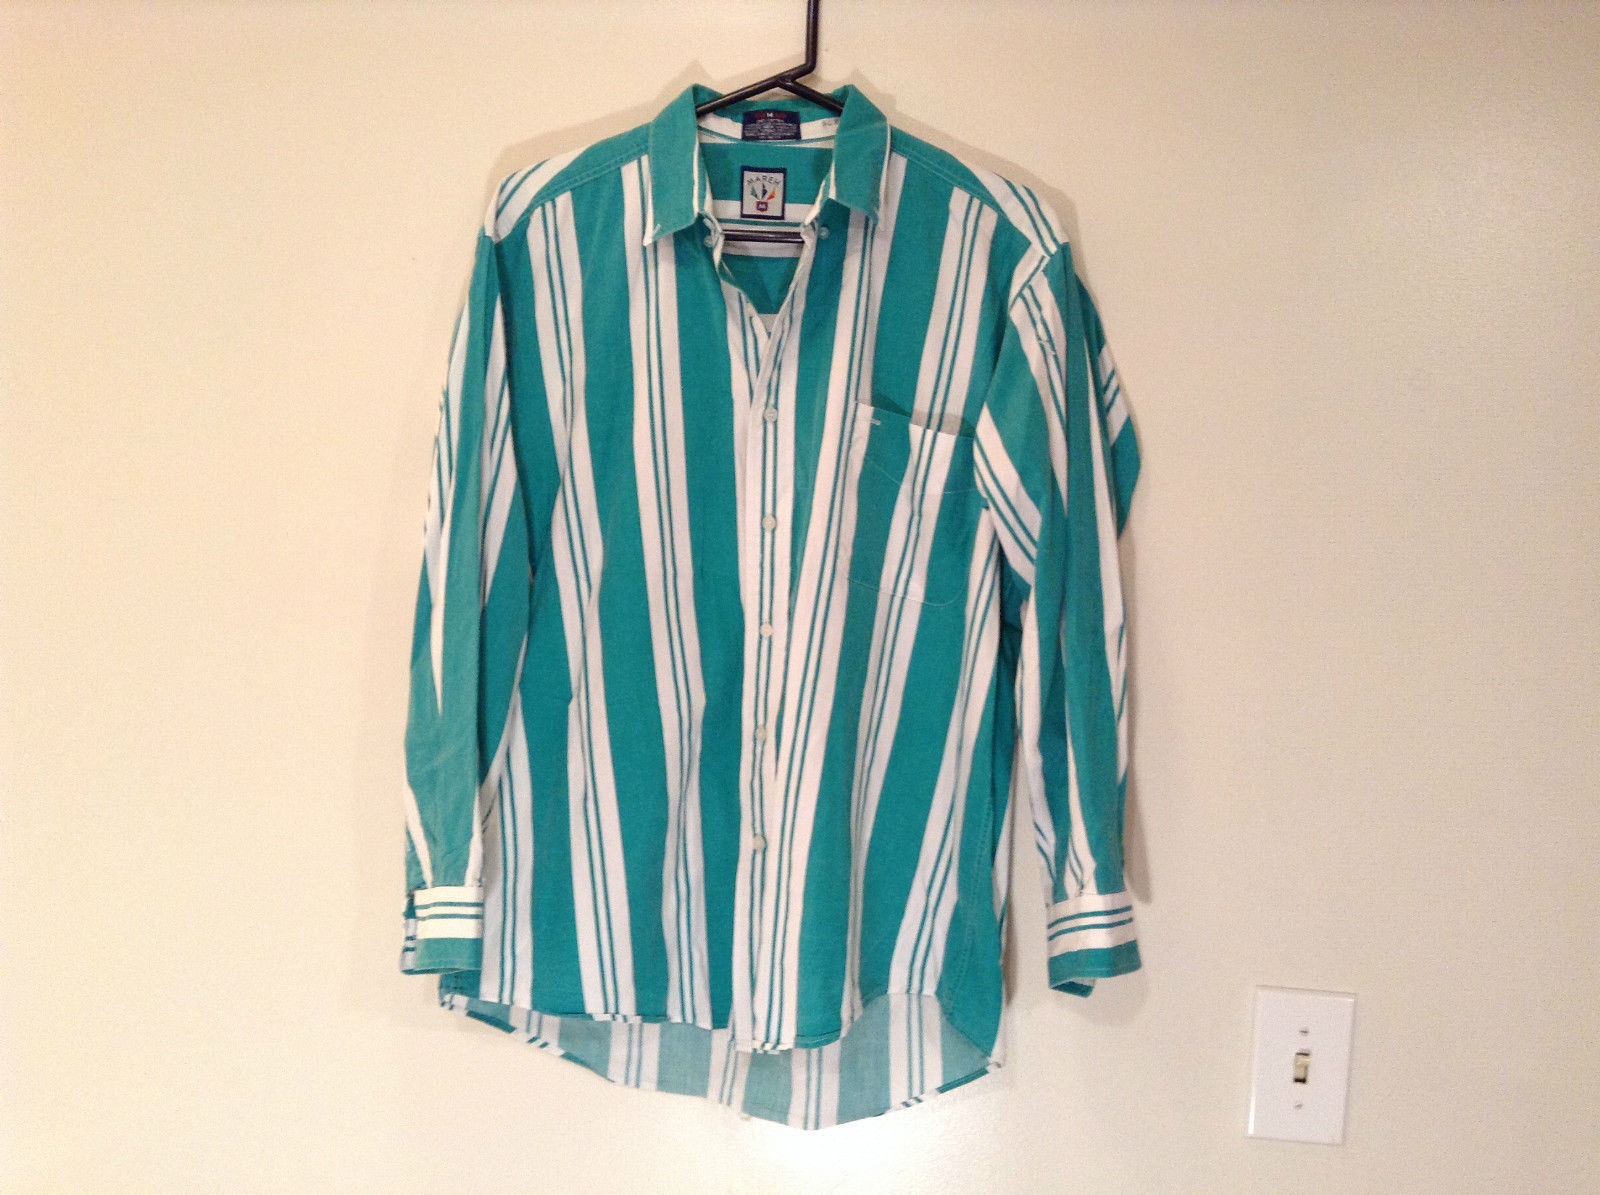 Mareh Size M Long Sleeve Green and White Collared Button Up Casual Shirt